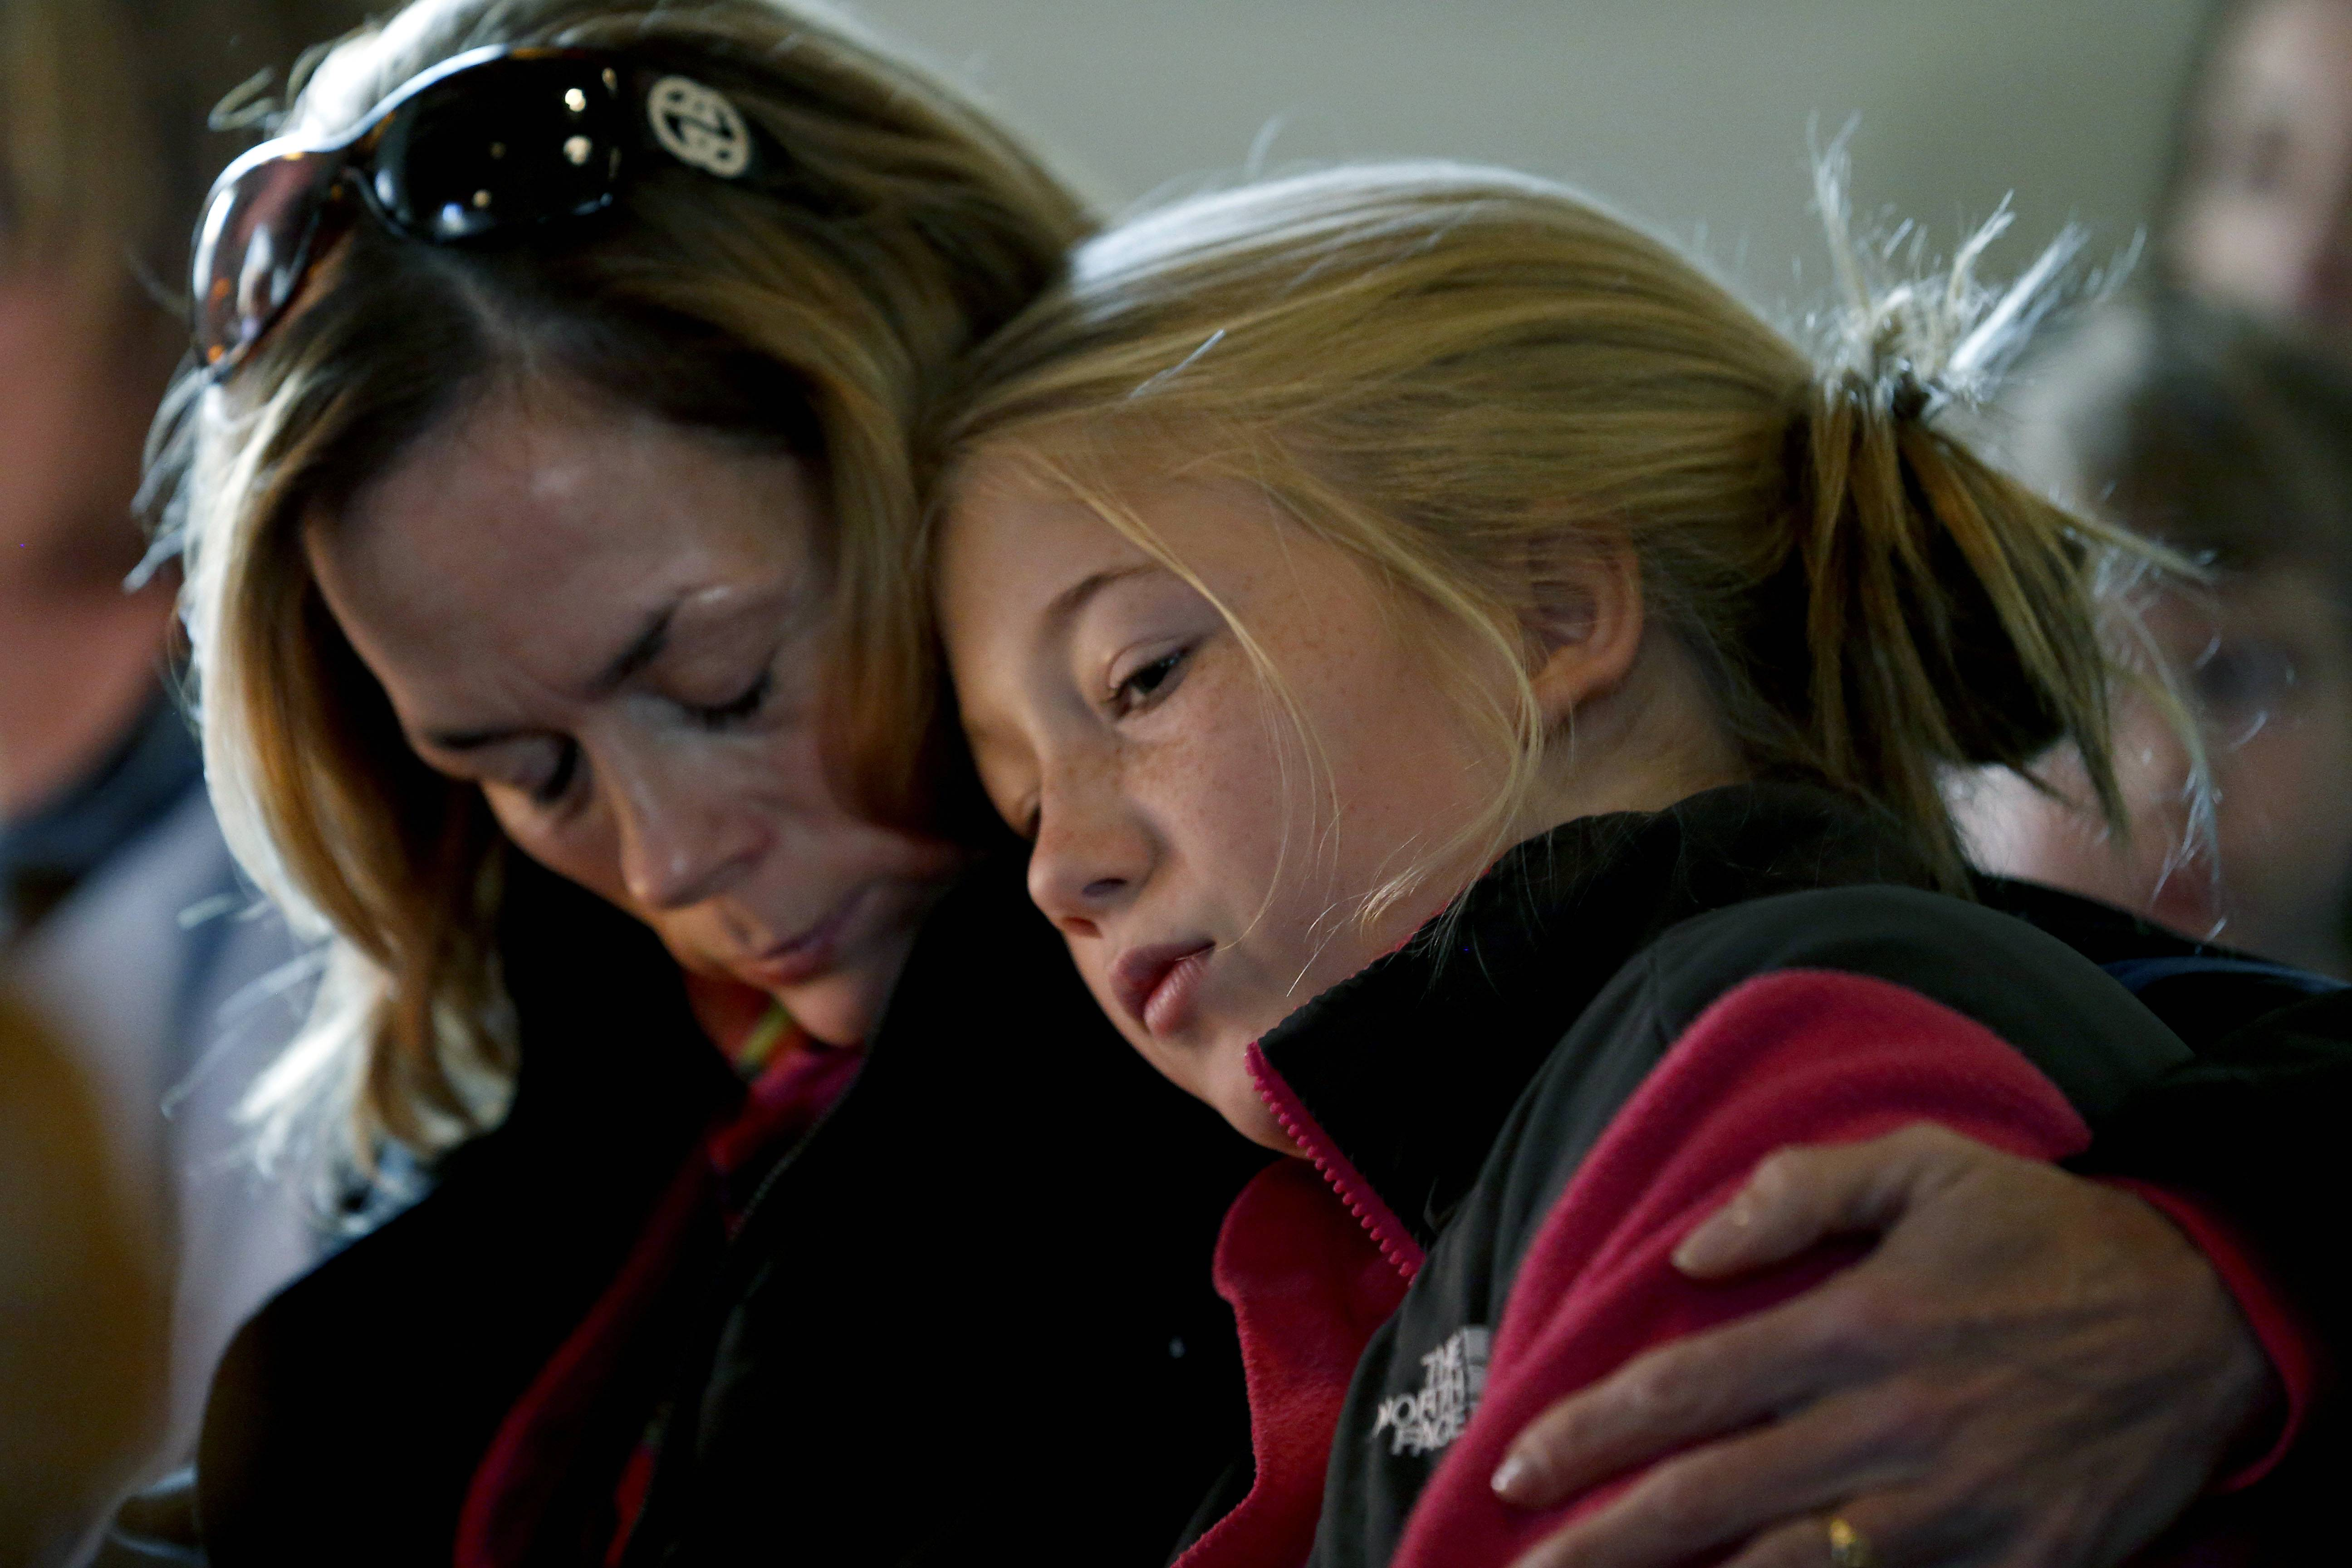 Molly Delaney, left, holds her 11-year-old daughter, Milly Delaney, Saturday during a service in honor of the victims who died a day earlier when a gunman opened fire at Sandy Hook Elementary School in Newtown, Conn.